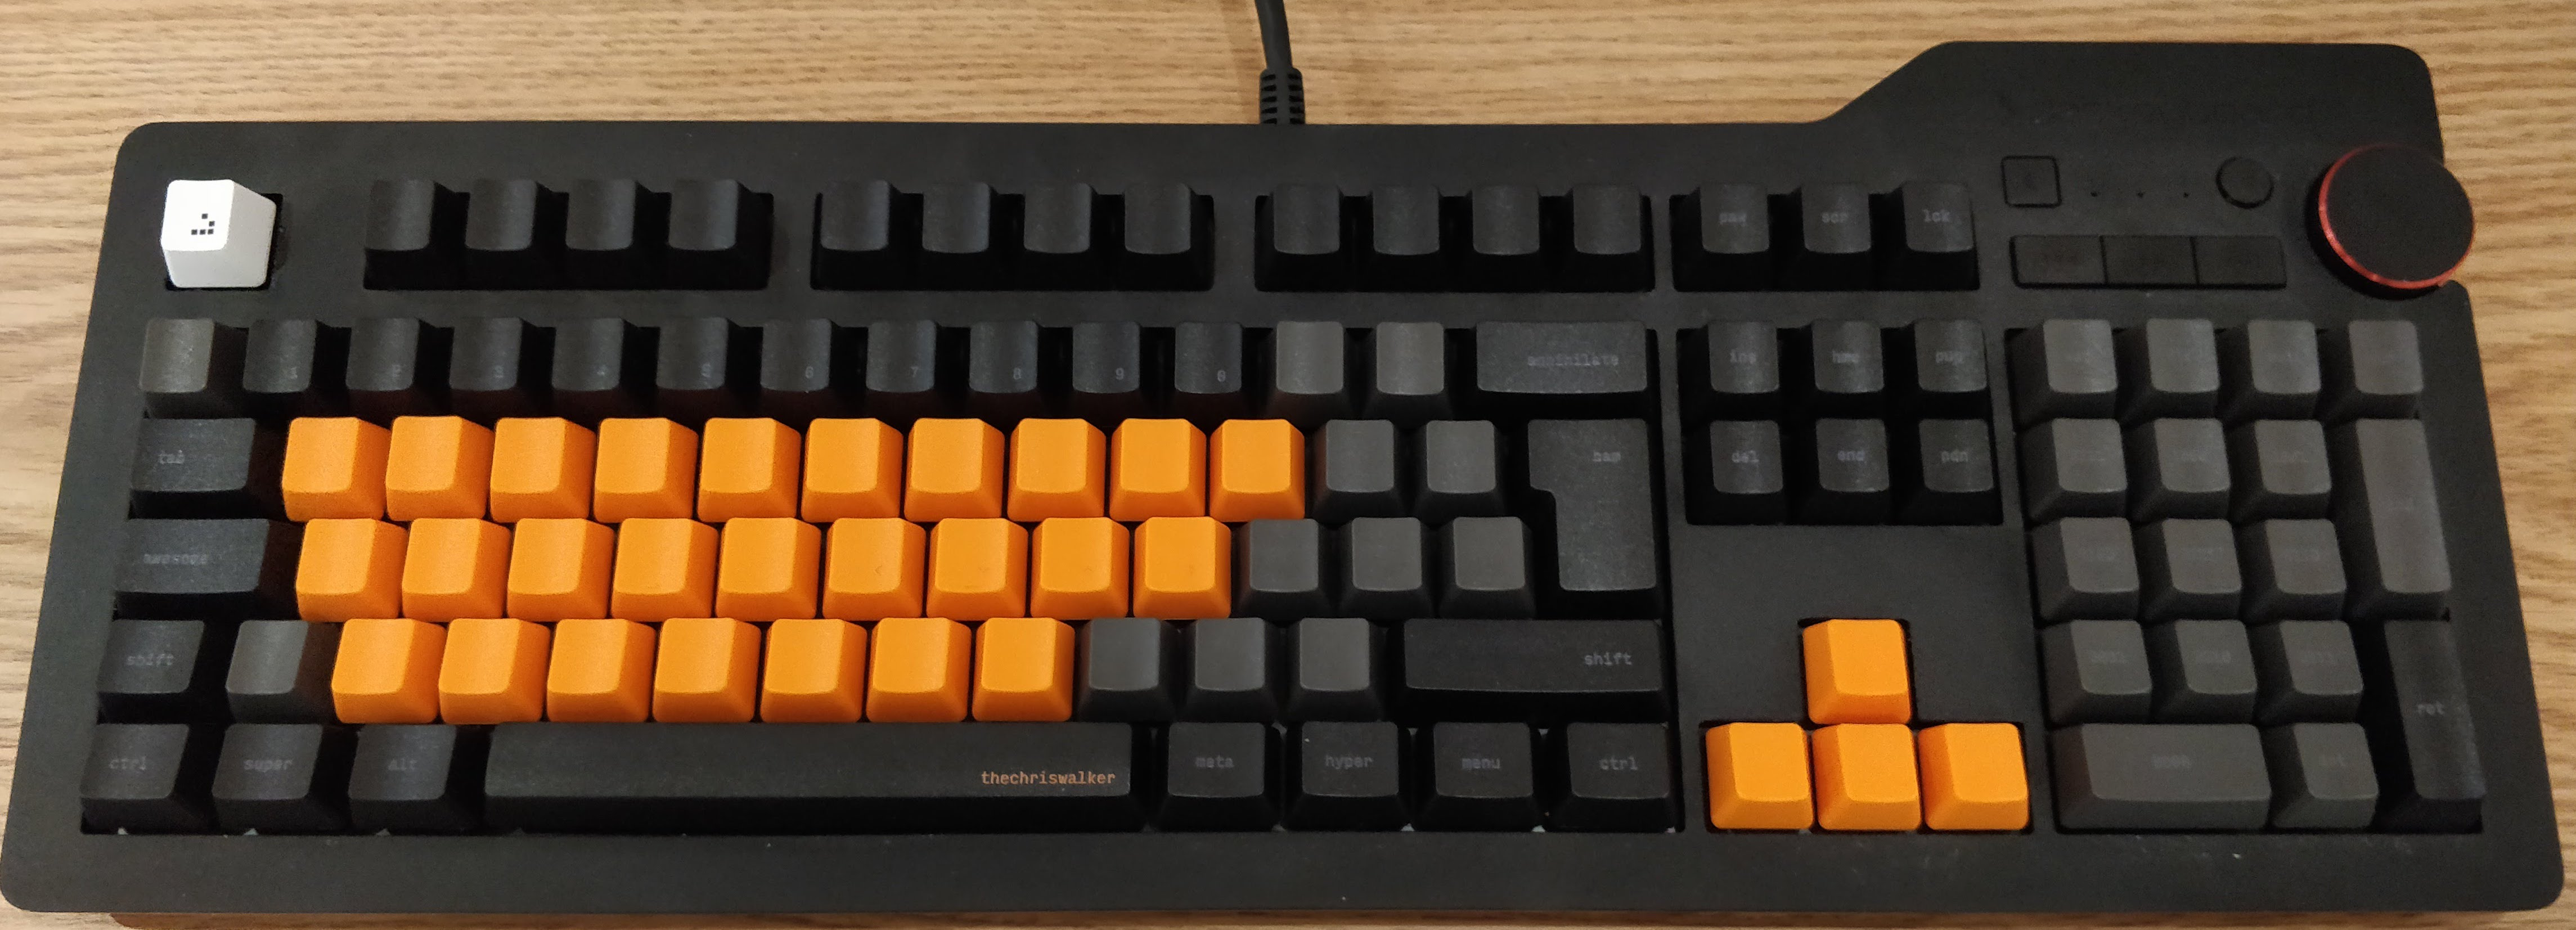 Keycaps in place